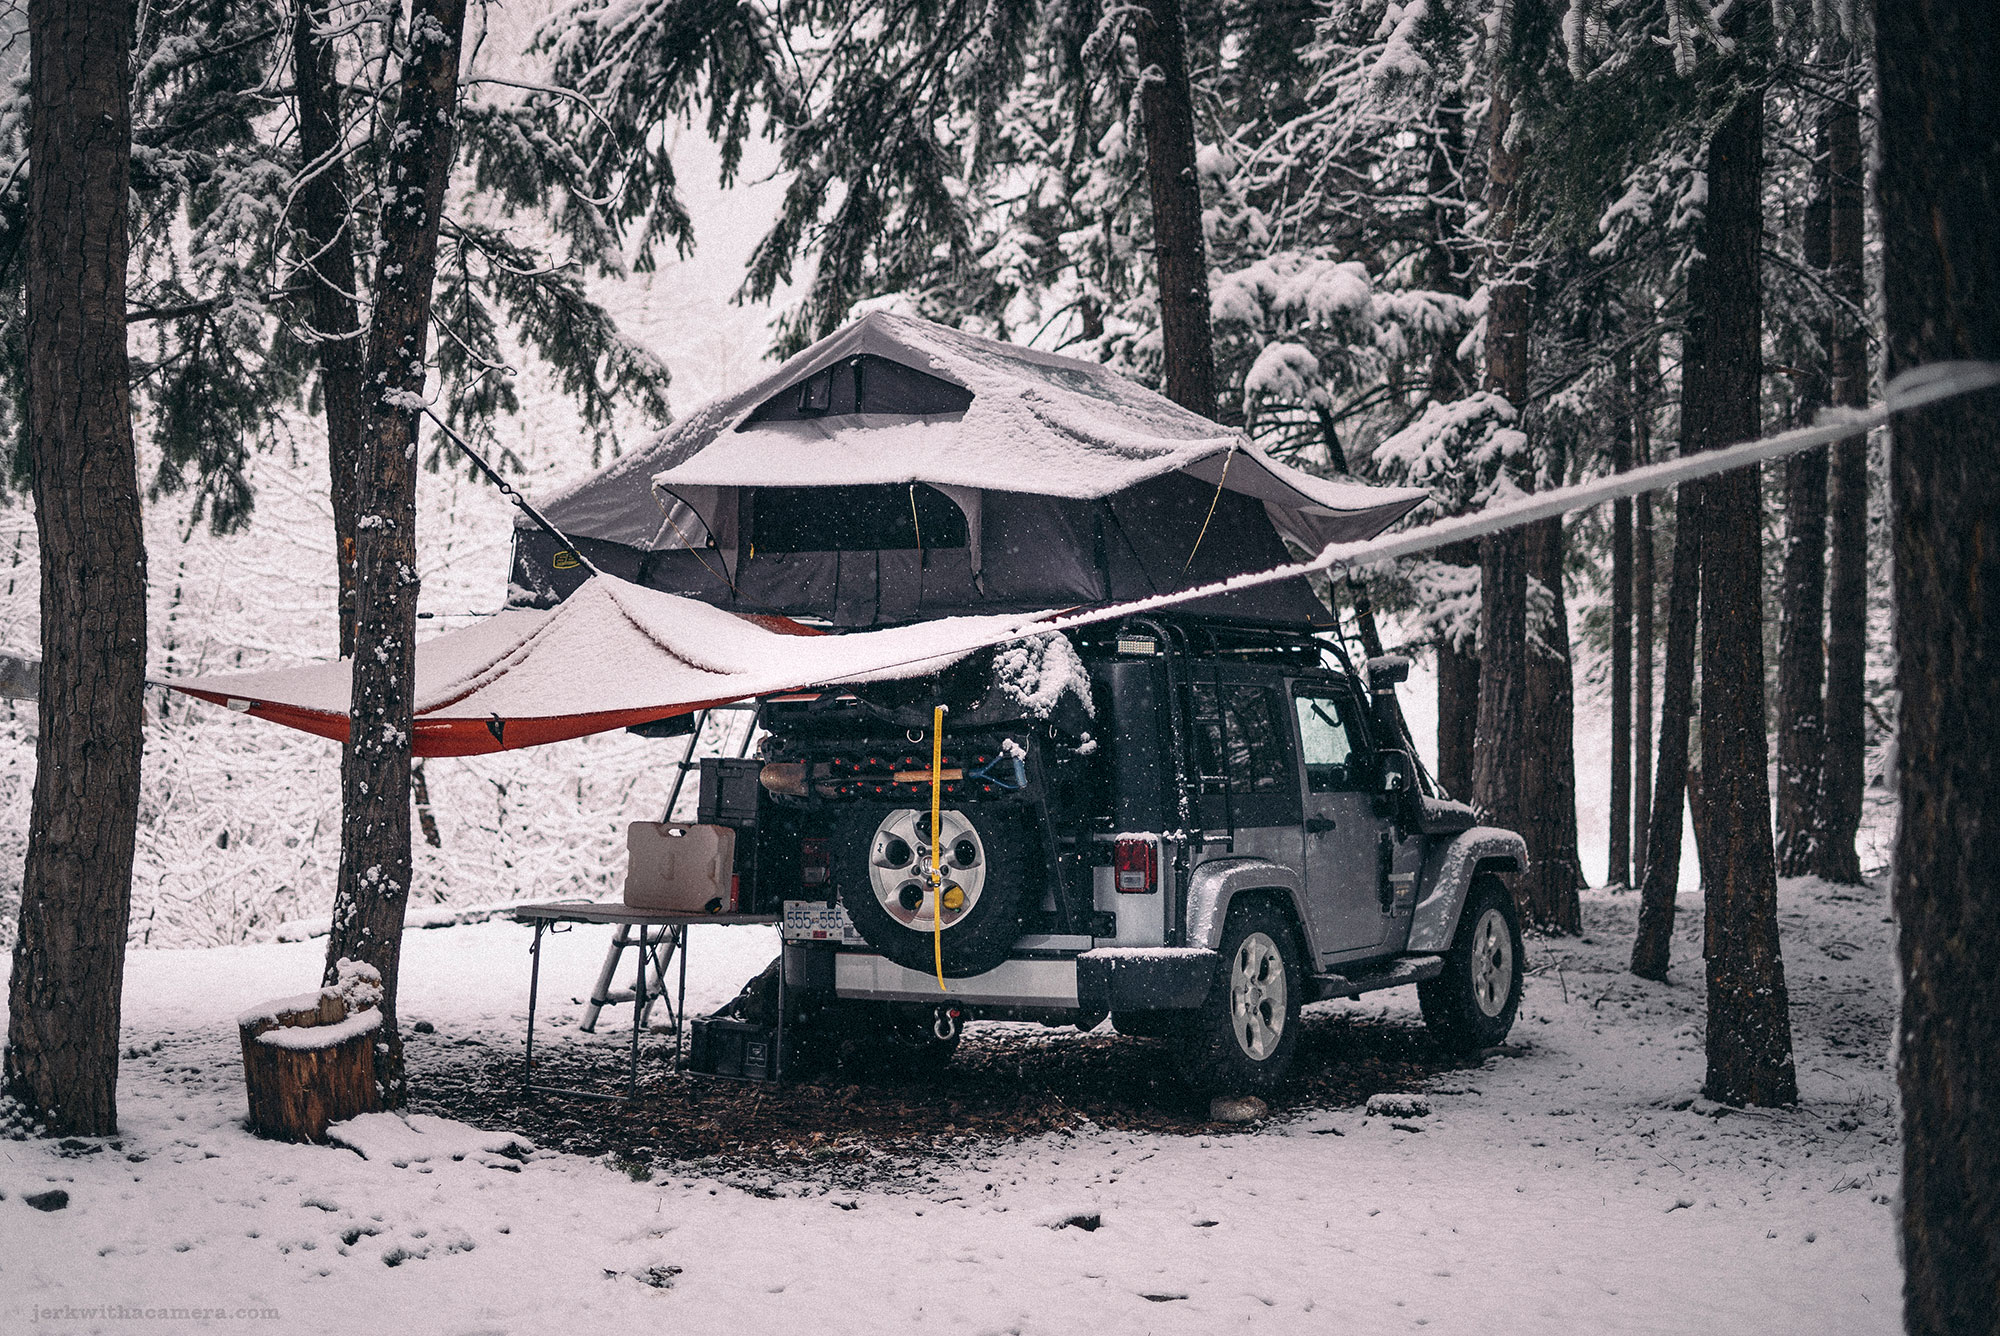 Overnight Camping trip to Lillooet